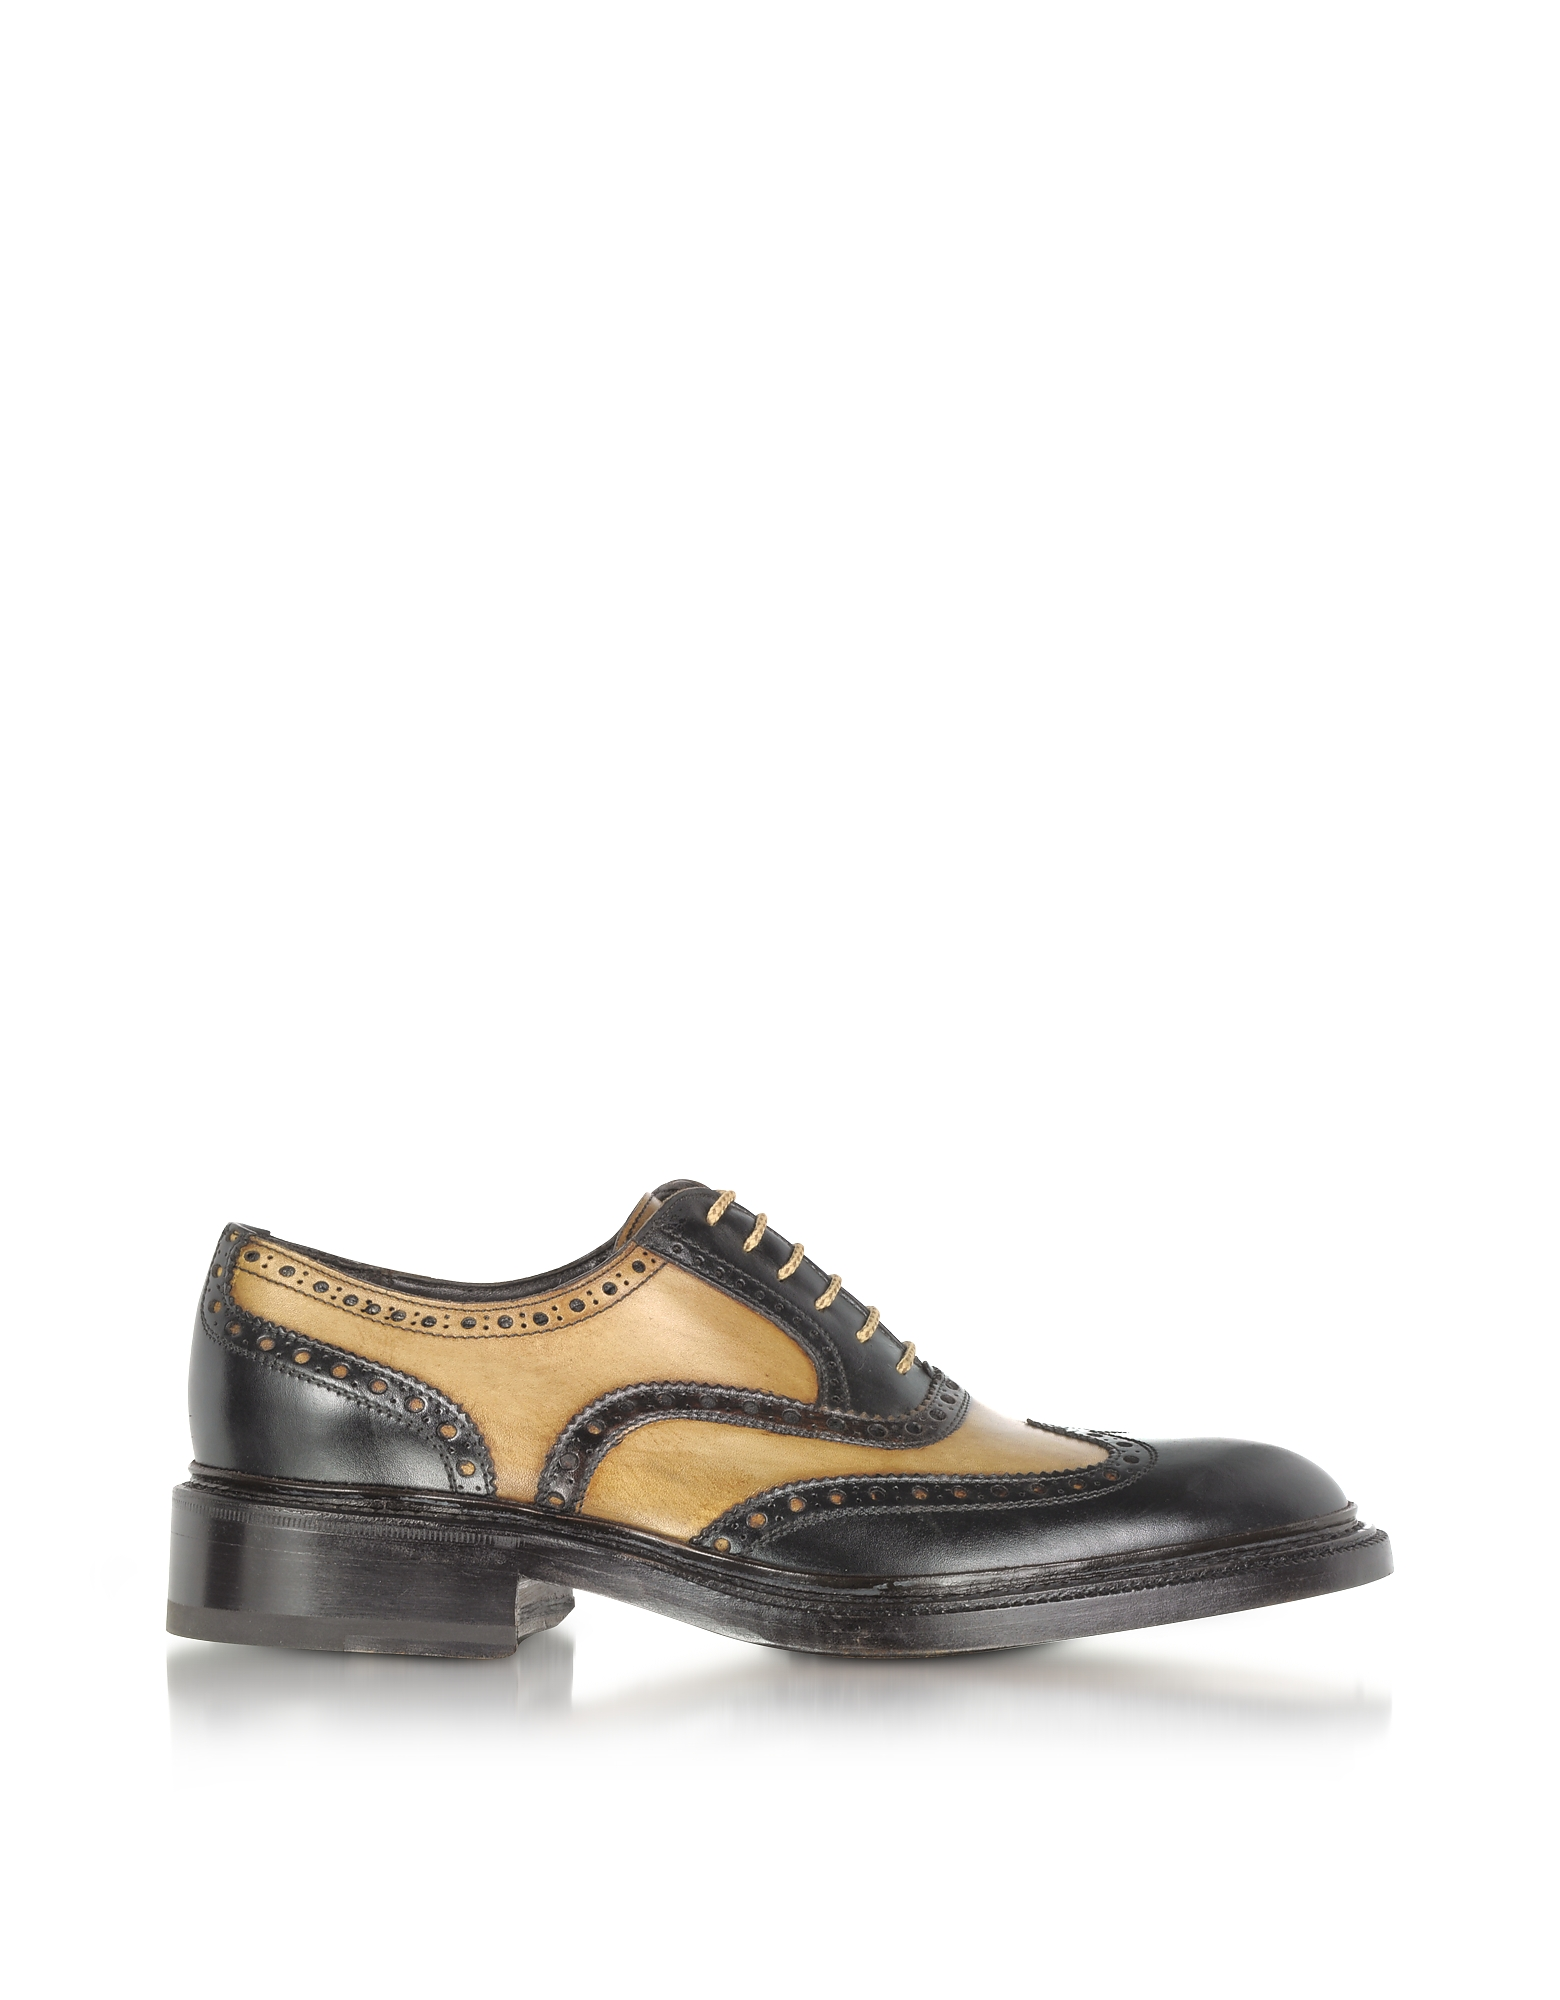 Downton Abbey Men's Fashion Guide Boardwalk Empire- Forzieri Designer Shoes Italian Handcrafted Two-tone Wingtip Oxford Shoes $660.00 AT vintagedancer.com